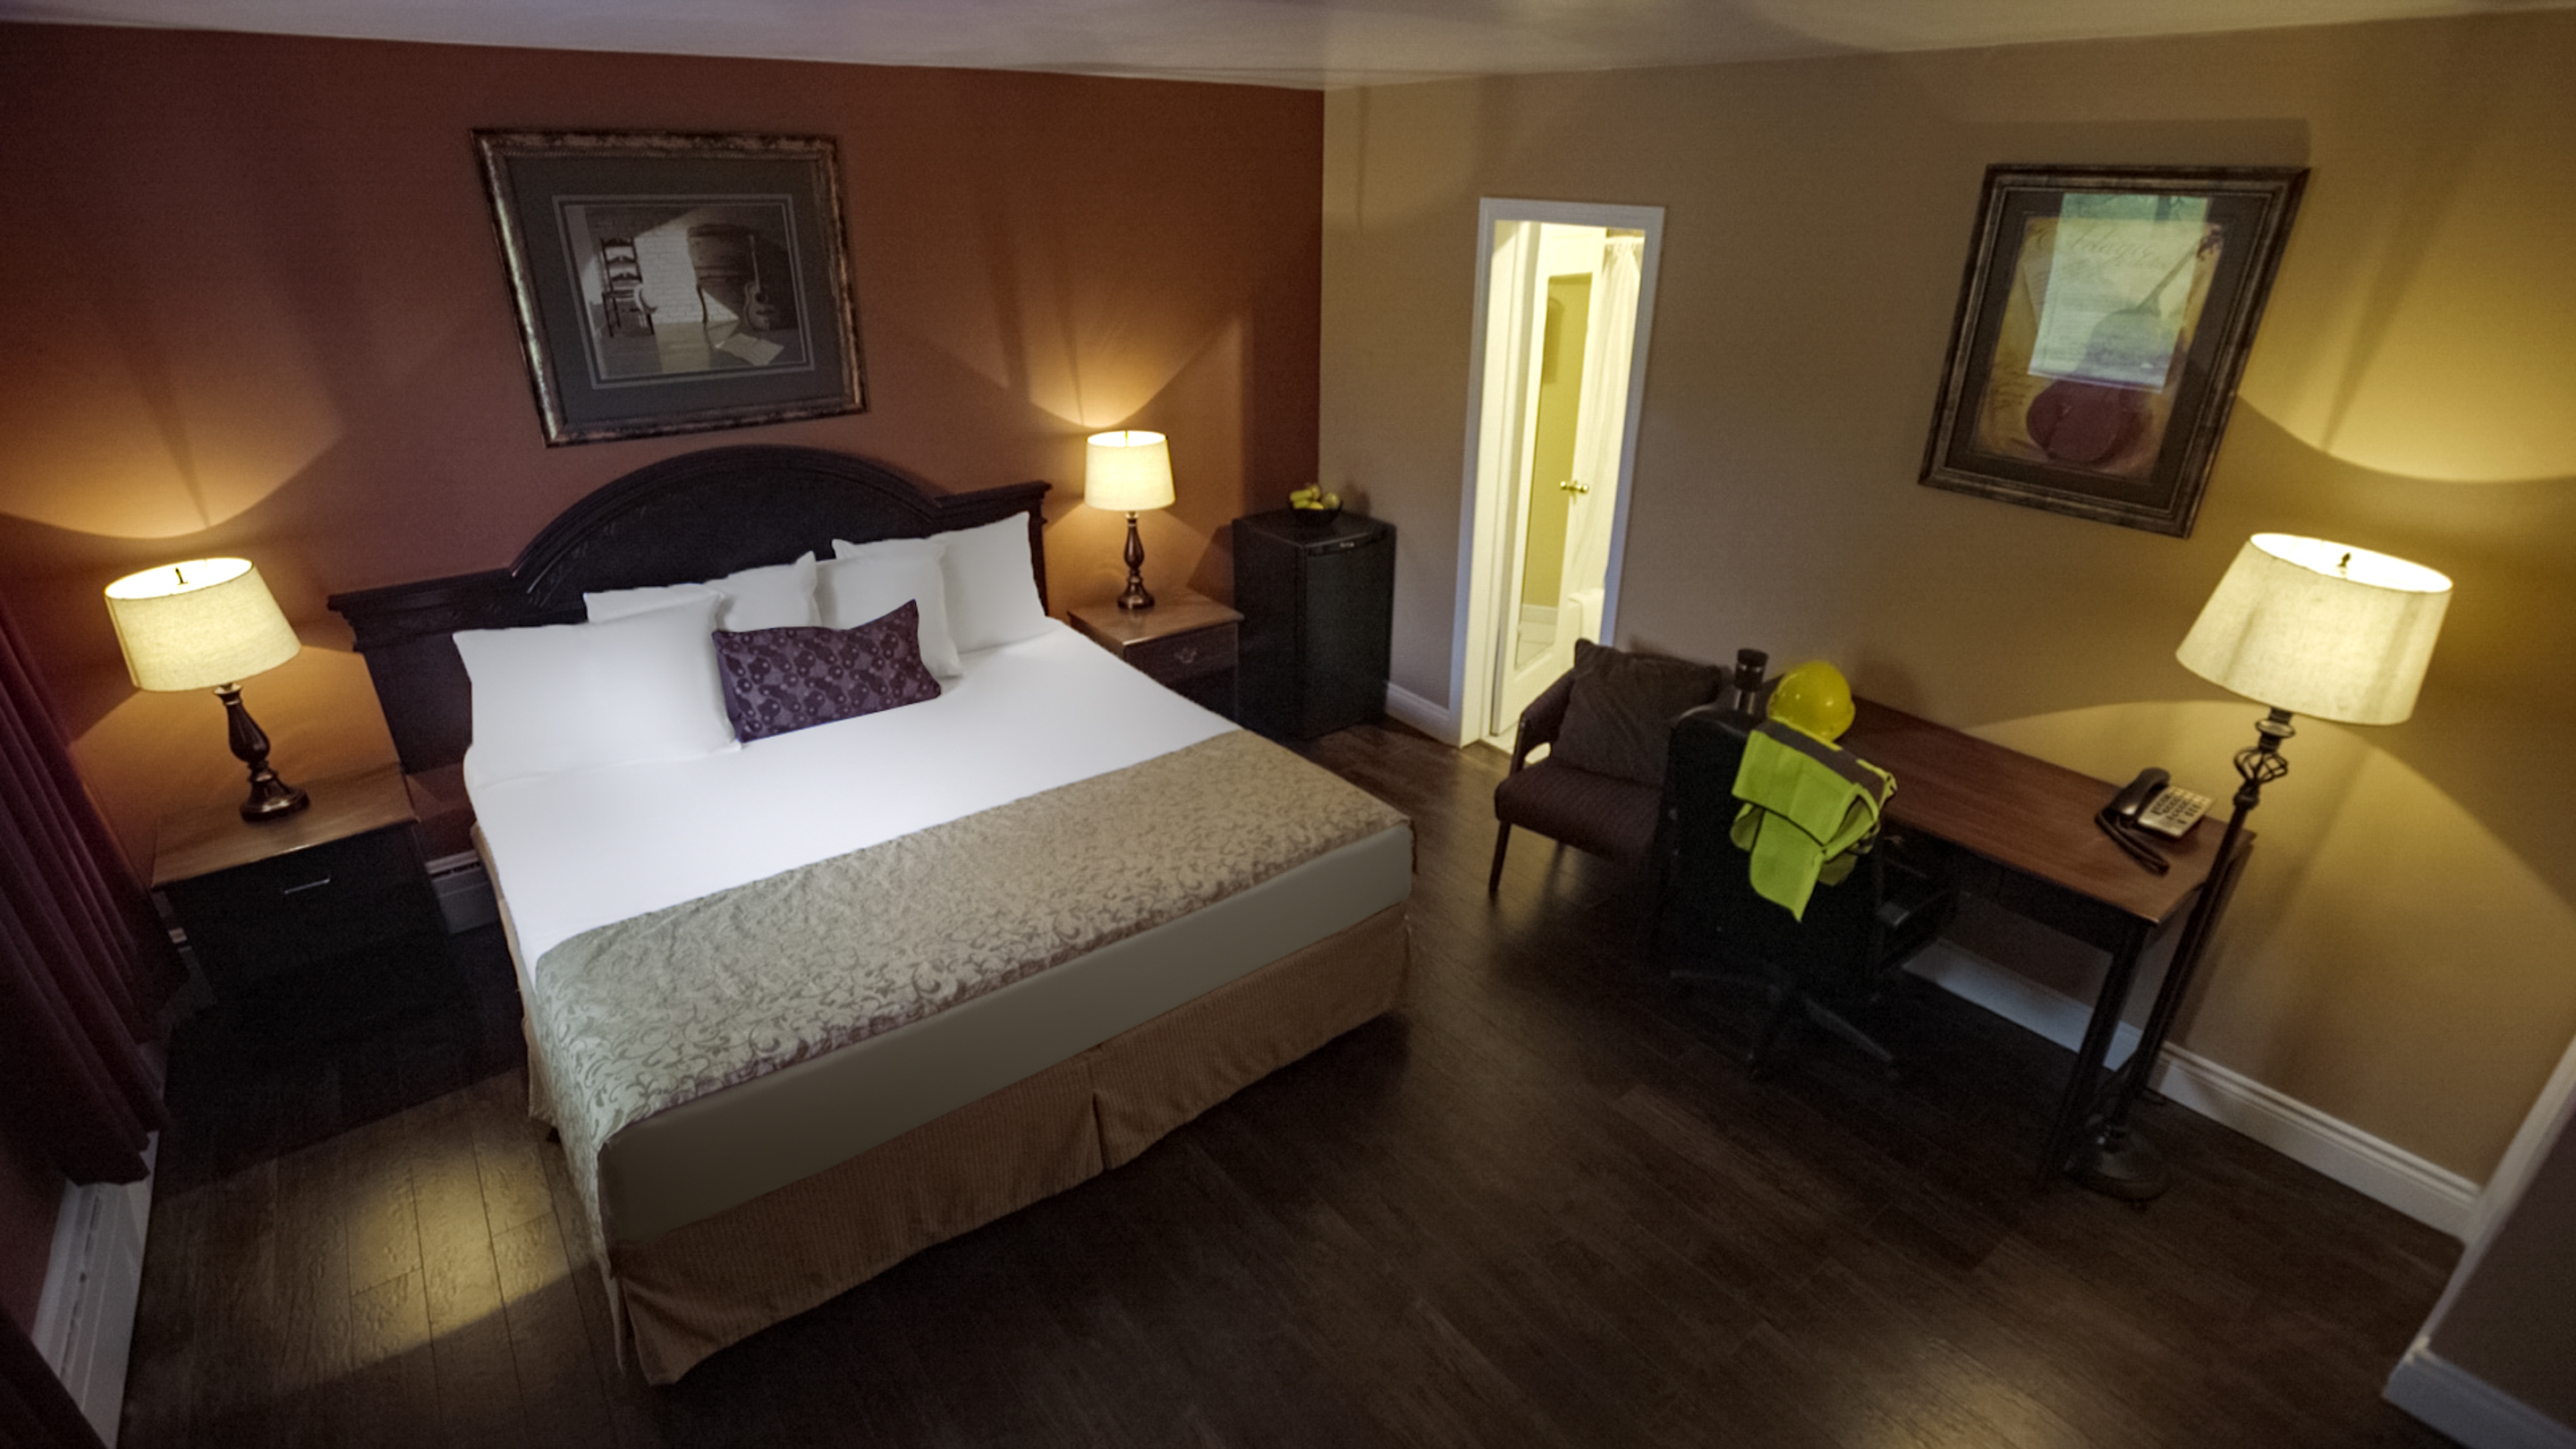 8705.11735.port-hawkesbury.hearthstone-inn-port-hawkesbury.room.single-king.01